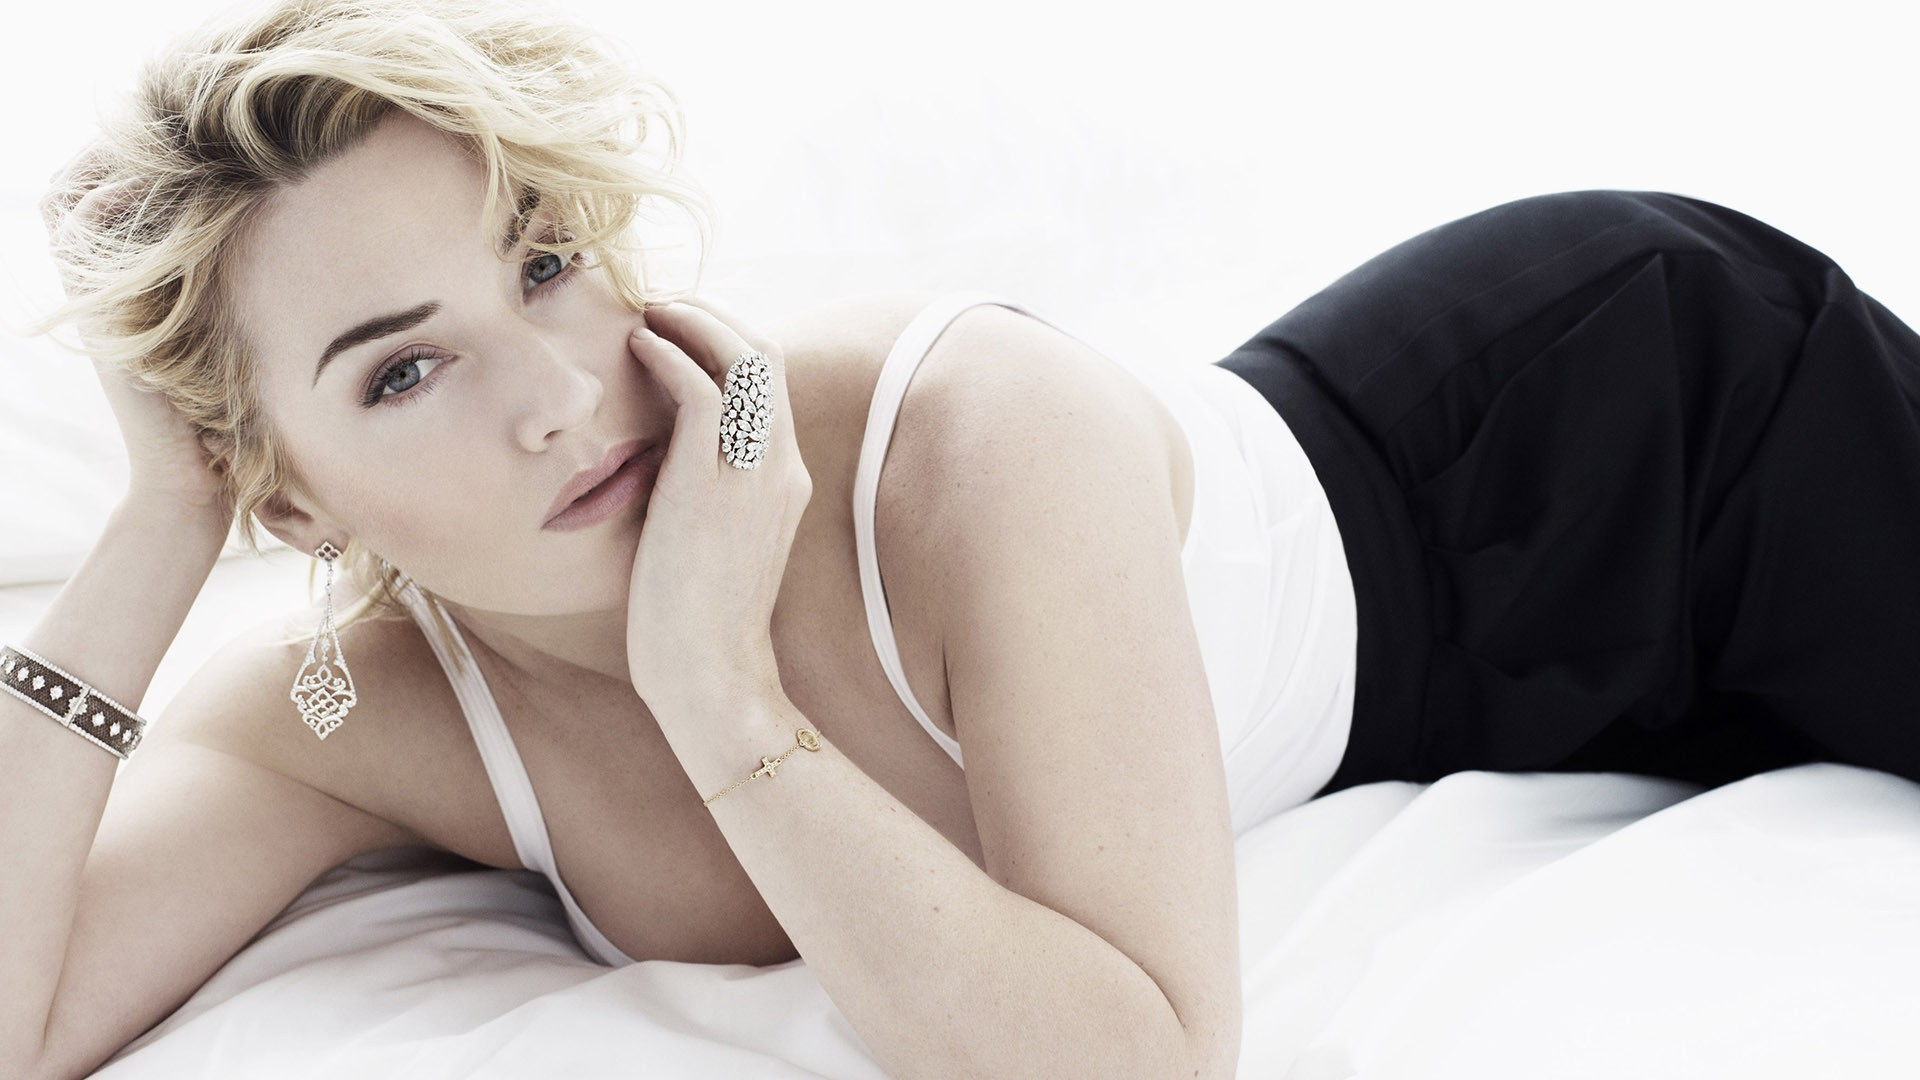 Kate winslet beautiful photos